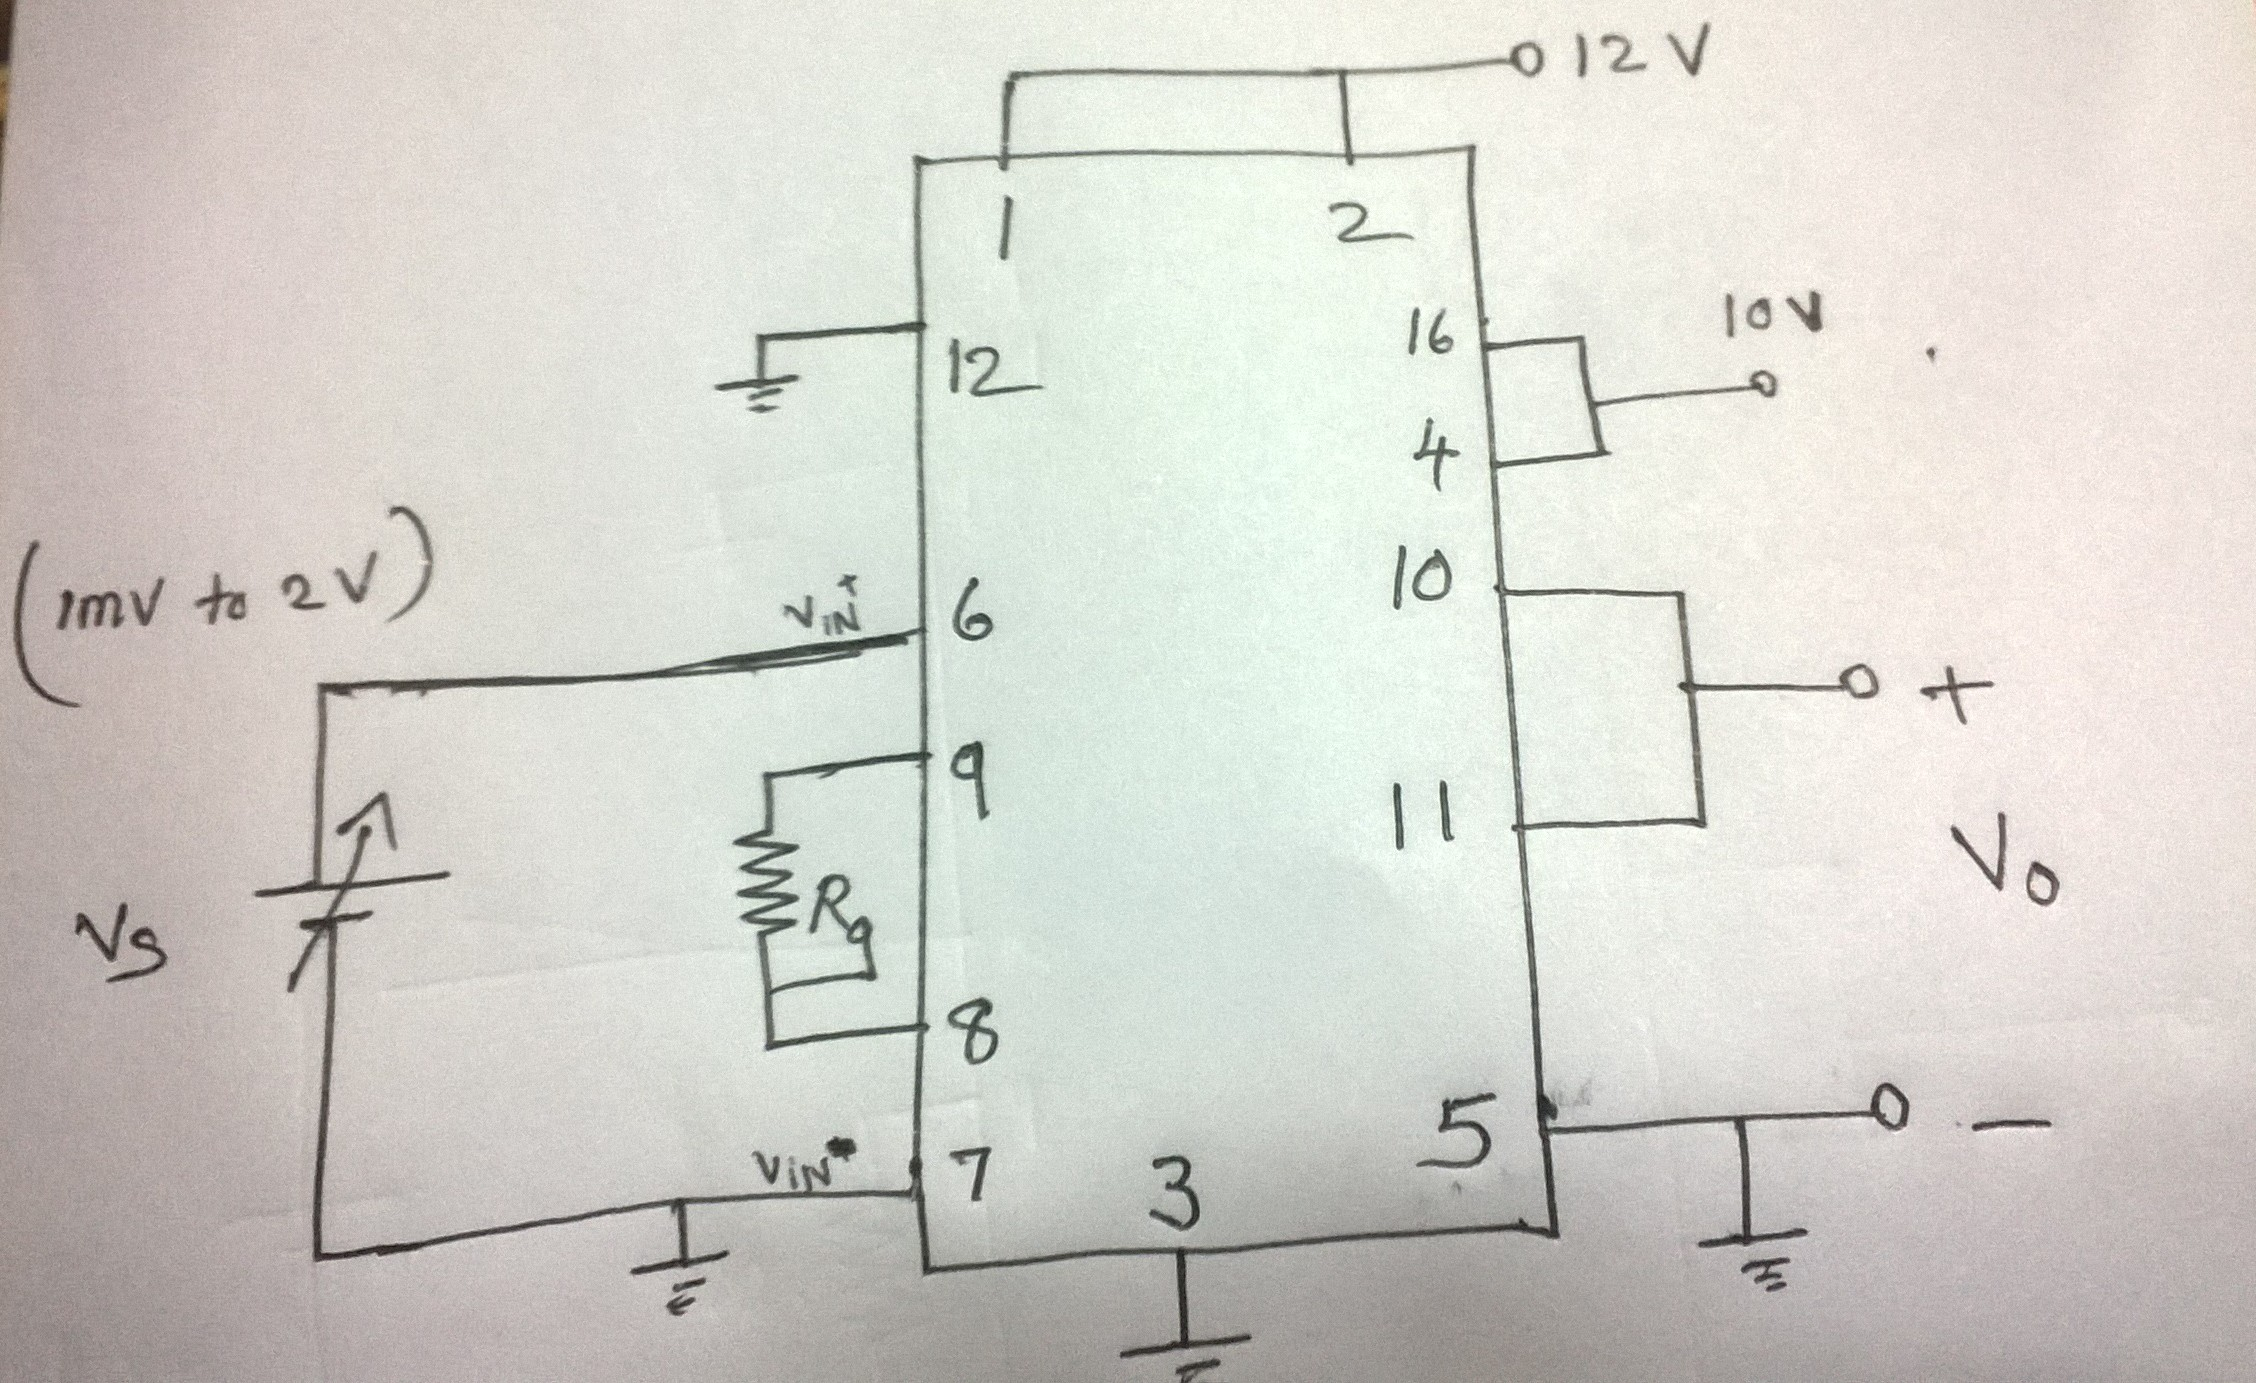 Resolved Ina 125 Simple Circuit Diagram Amplifiers Forum Draw Out The For This We Got Reference Supply 10vplease Help Us What Is Problem